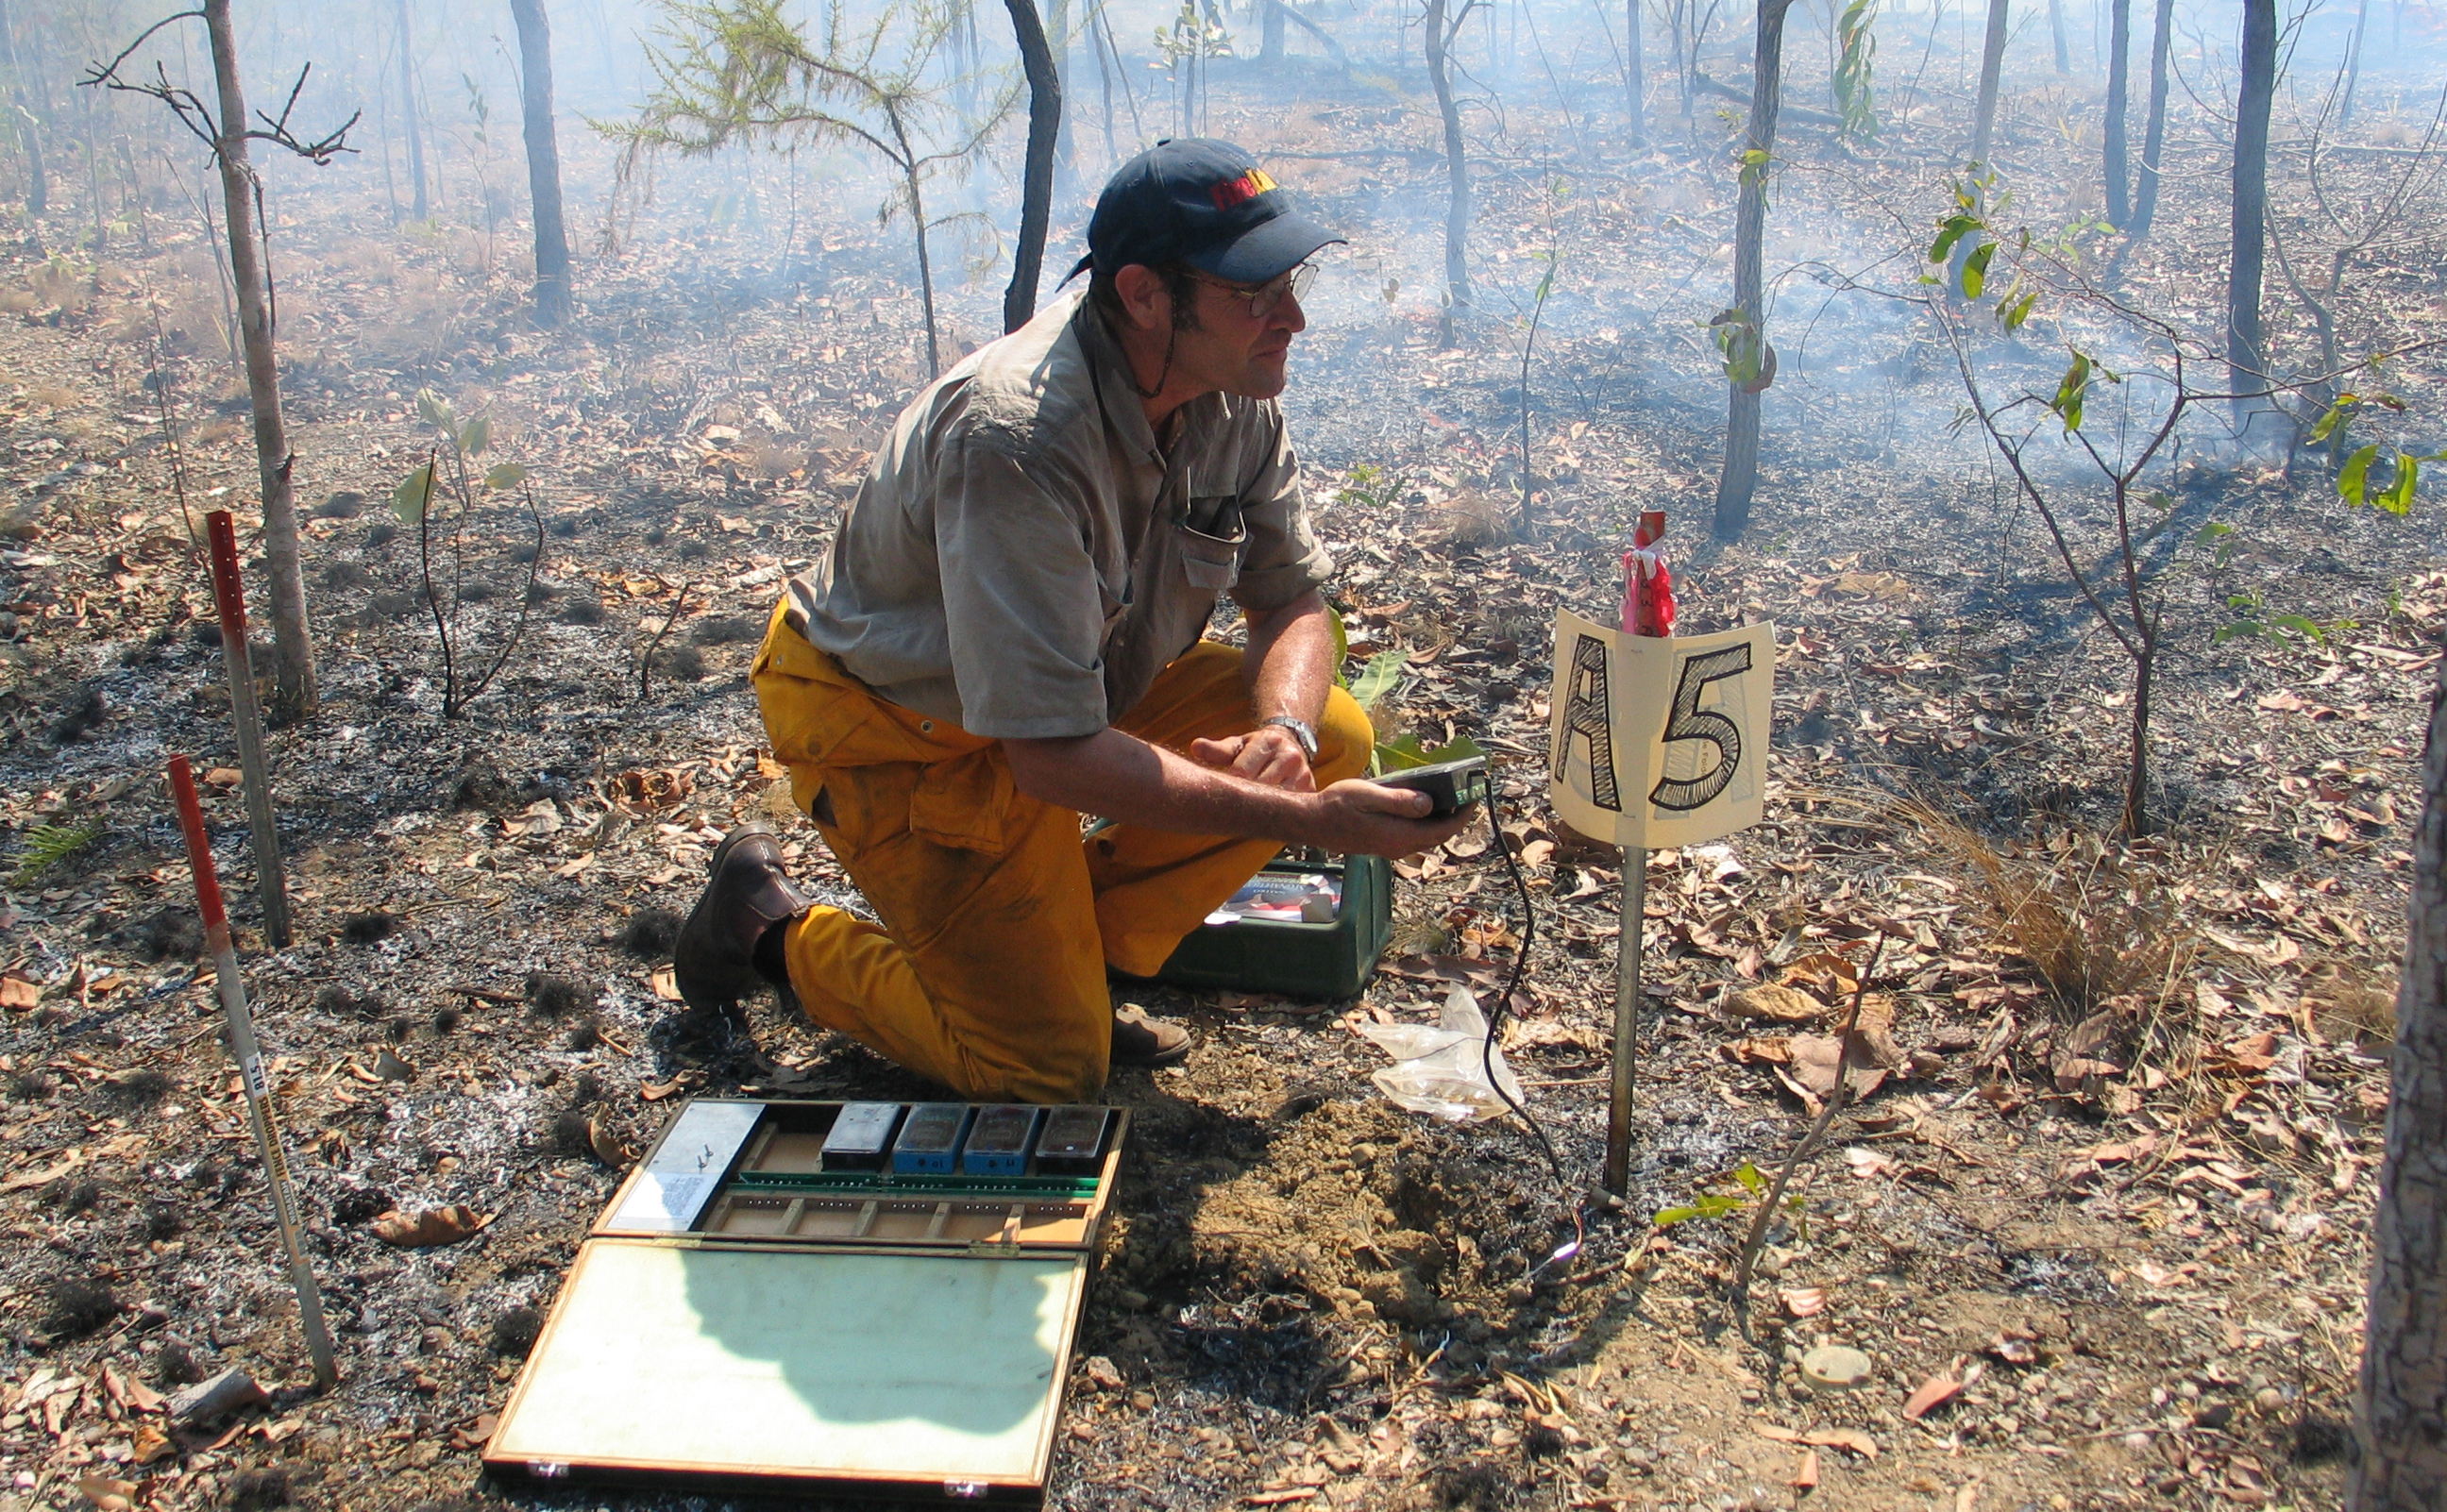 A man with a measuring device in an experimental plot that has just been burned